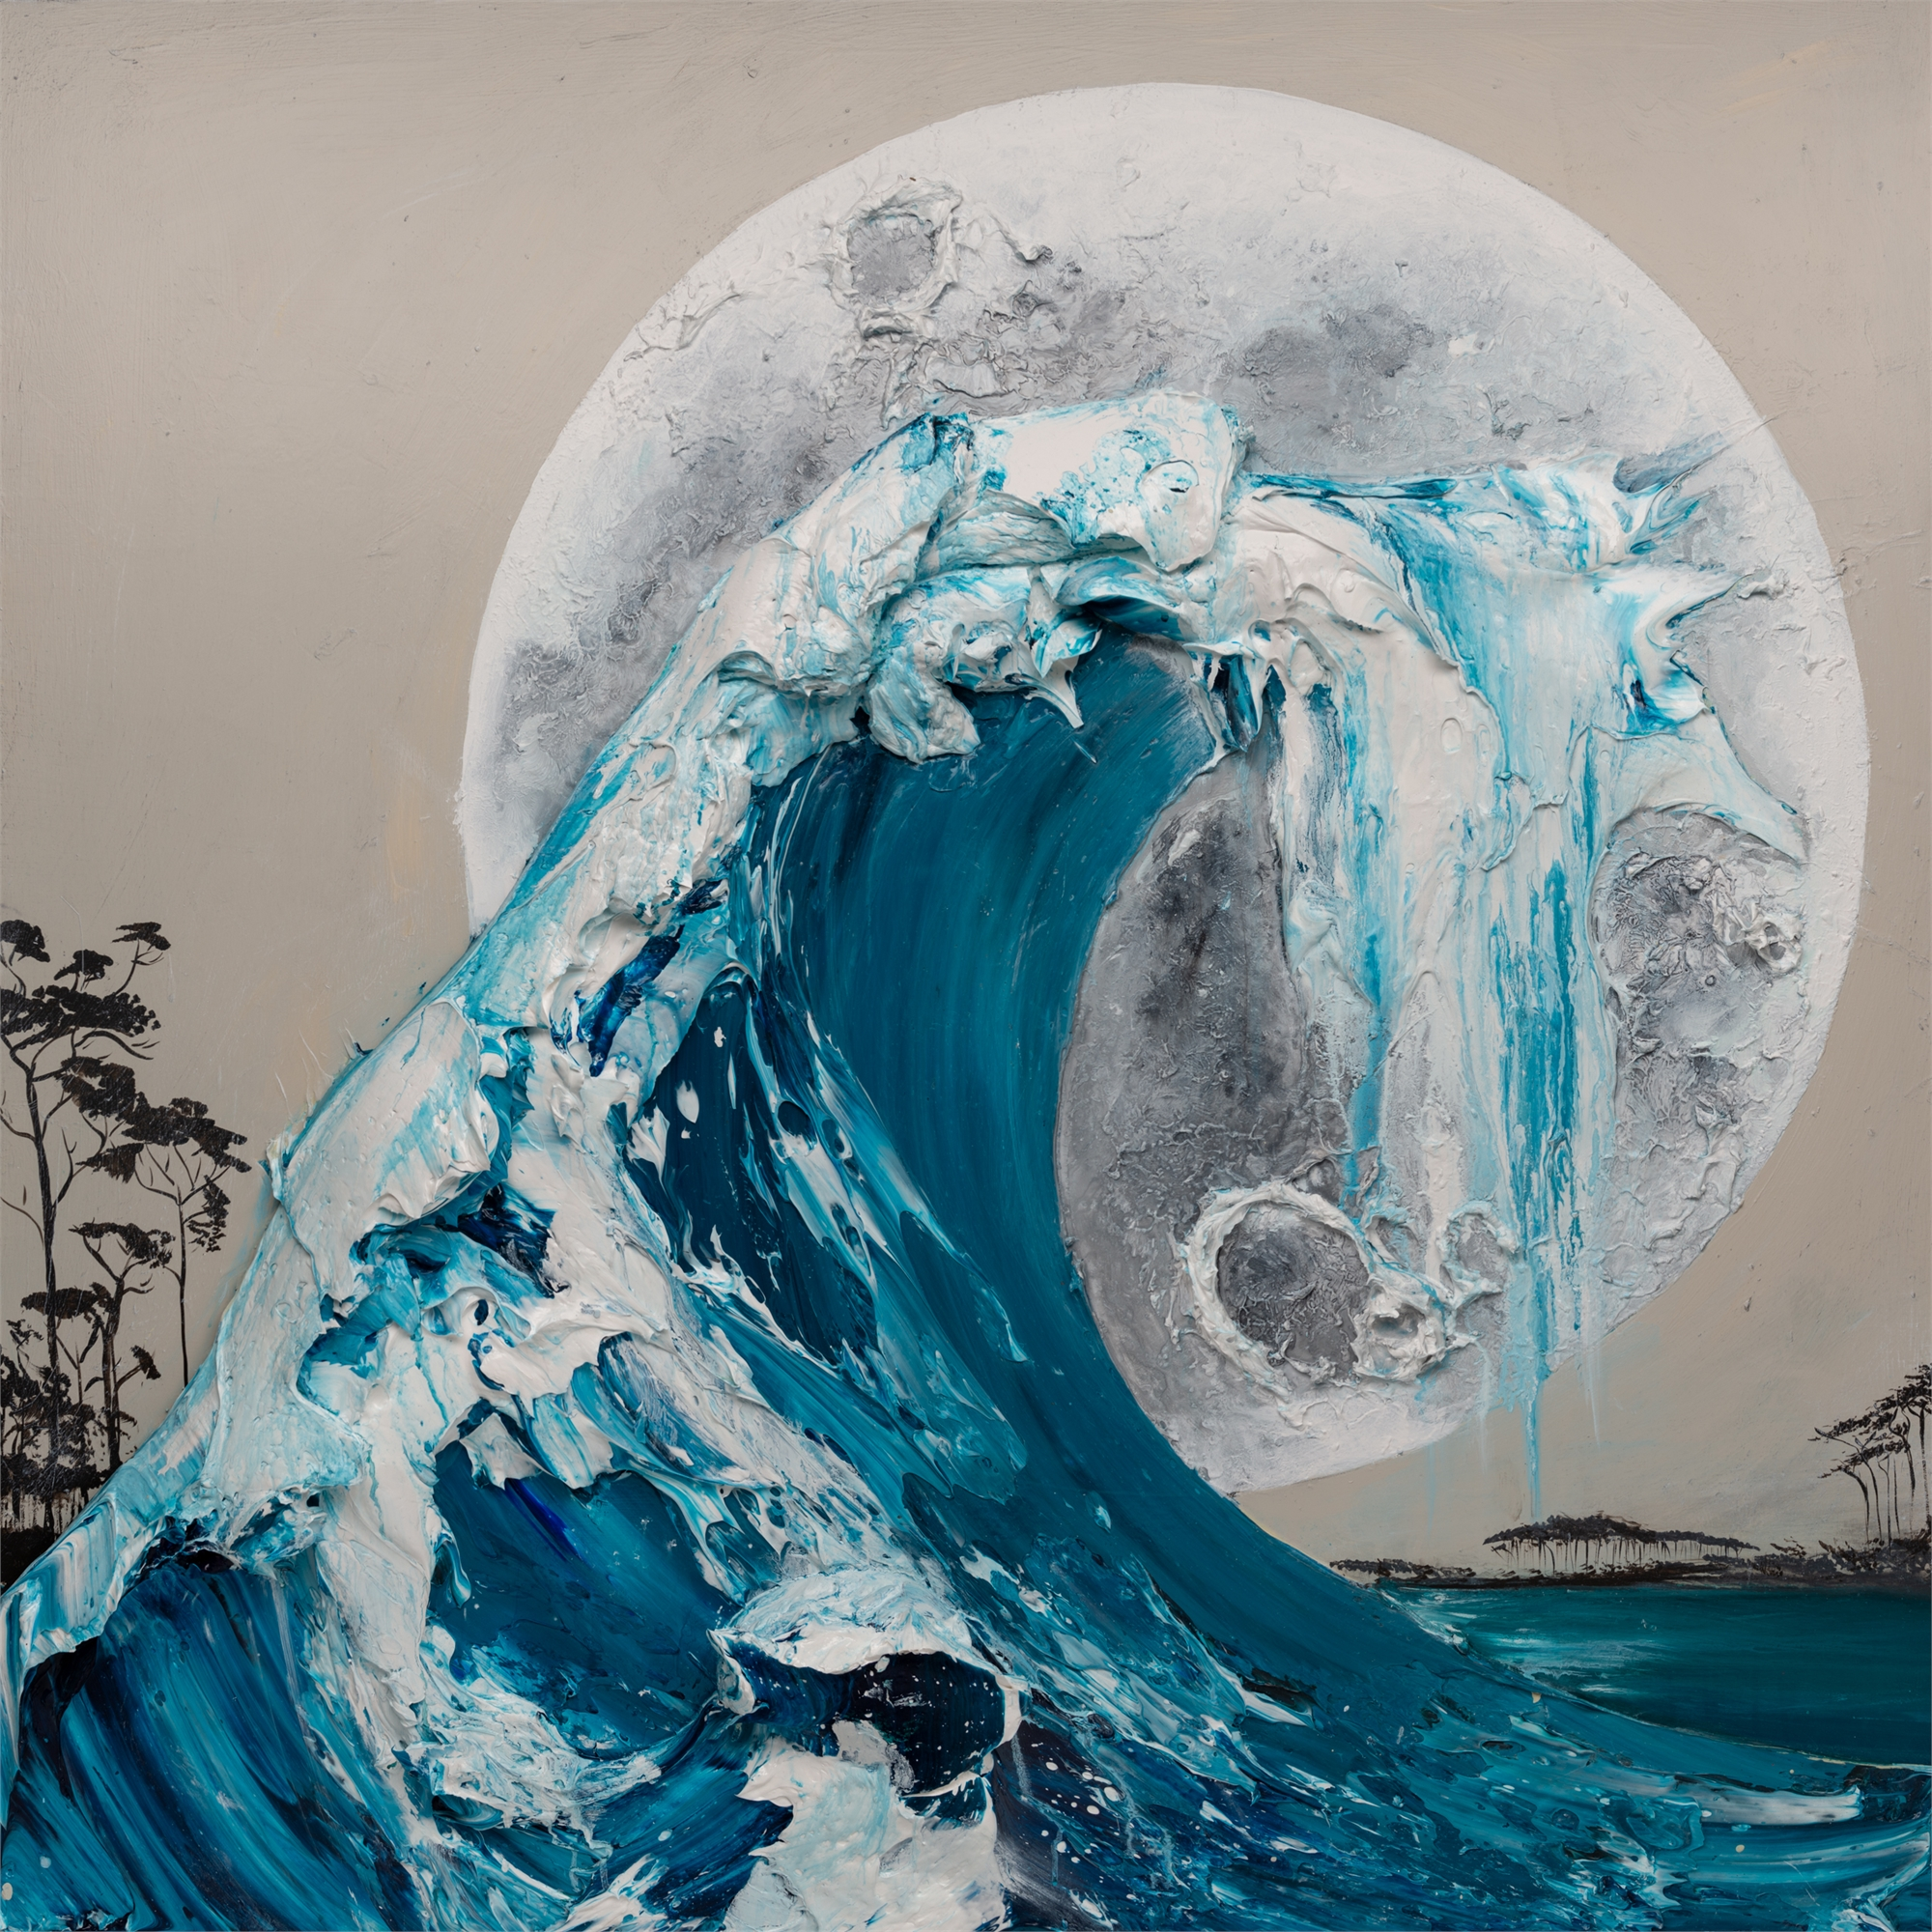 (SOLD) WAVE MOON 2 MS-48X48-2019-312 by JUSTIN GAFFREY